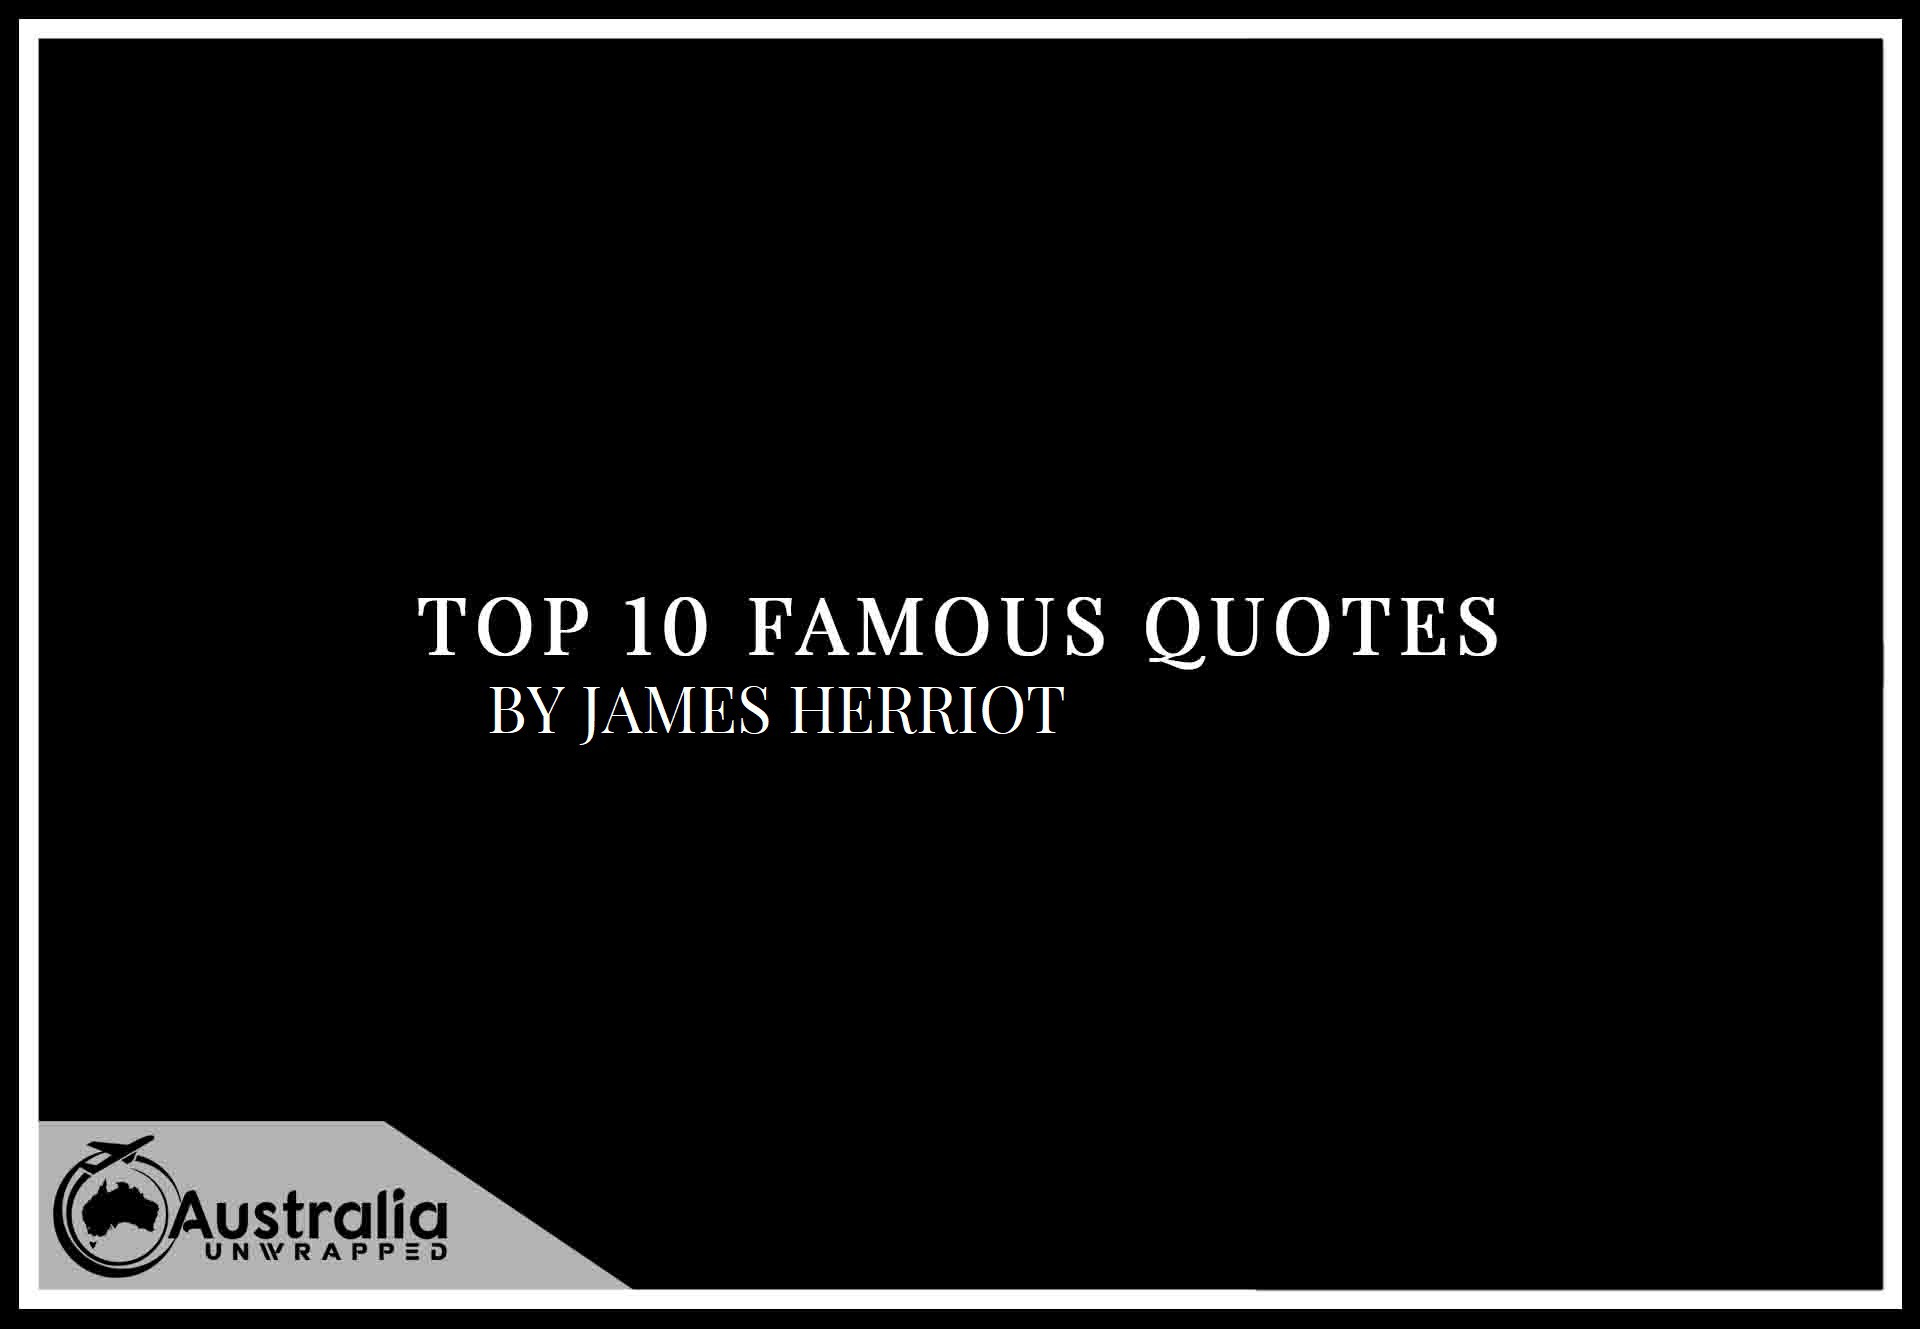 Top 10 Famous Quotes by Author James Herriot